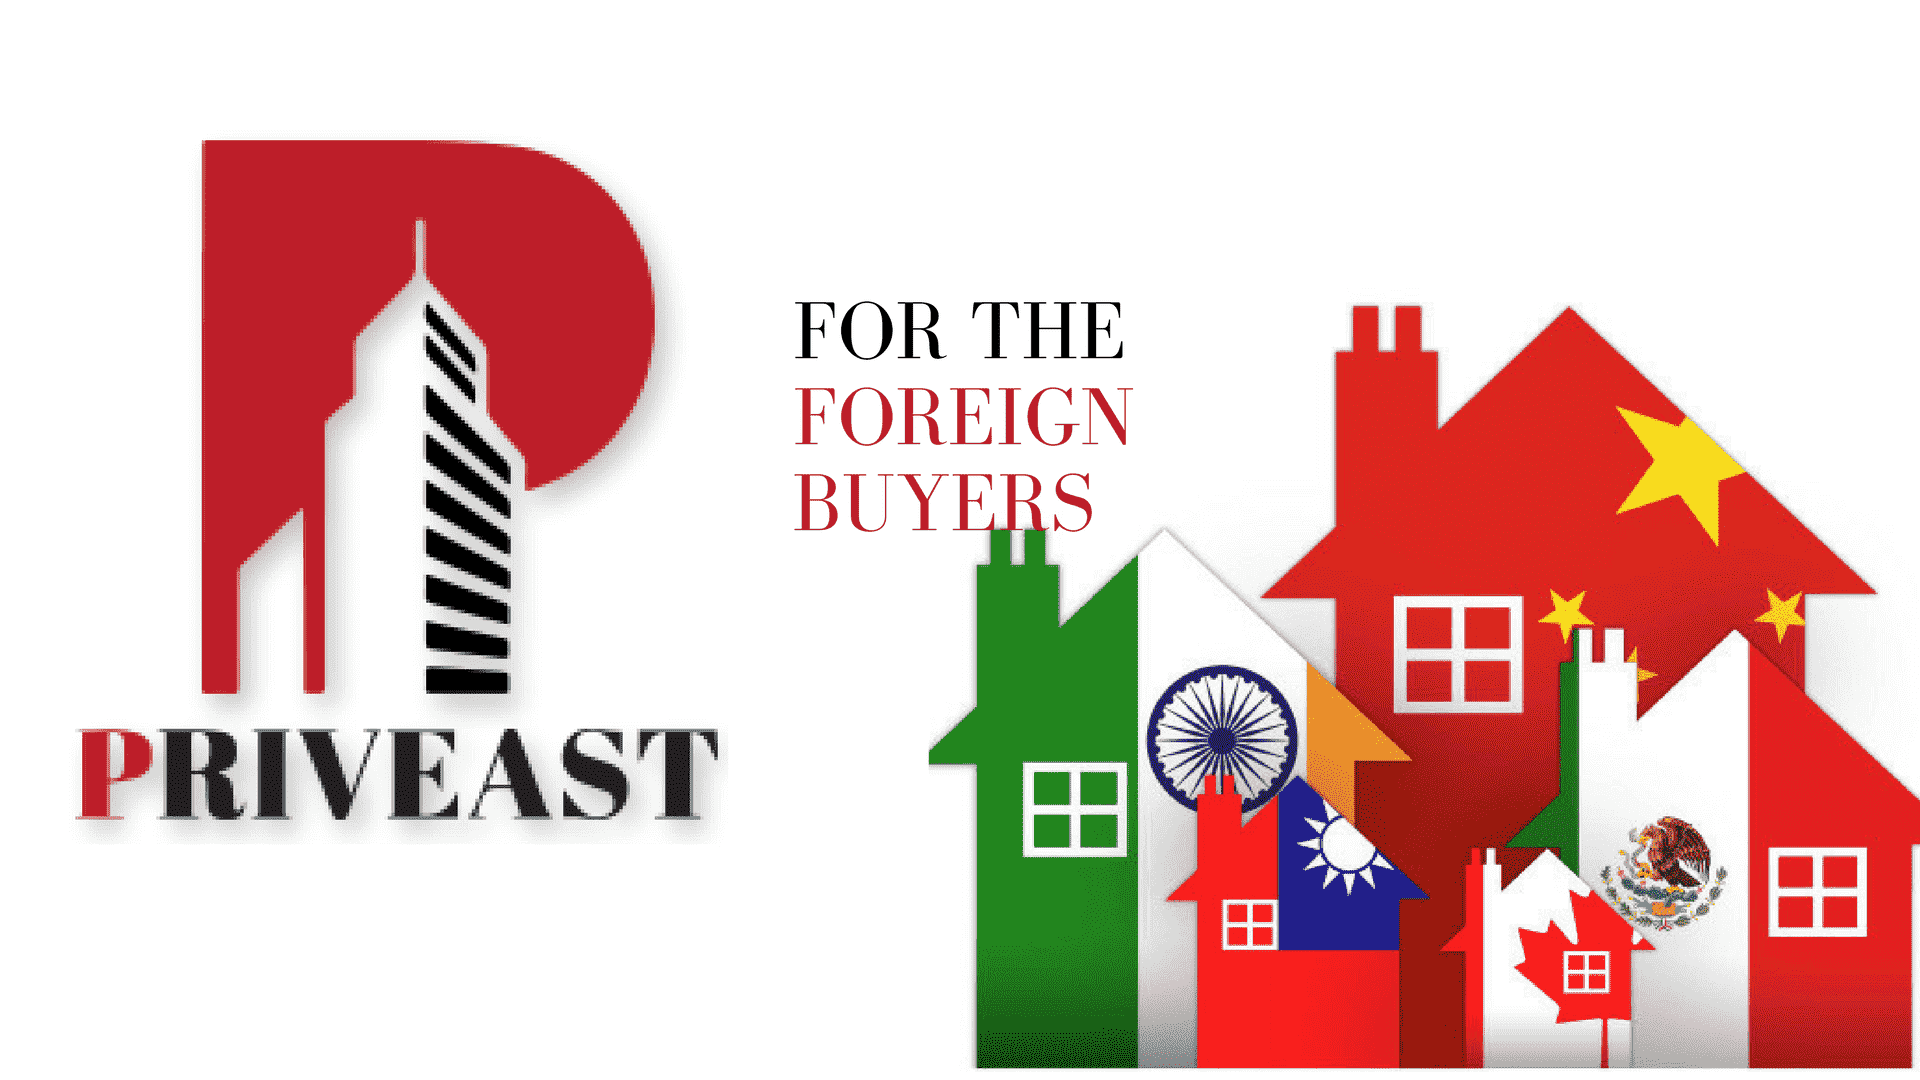 foreign buyers priveast